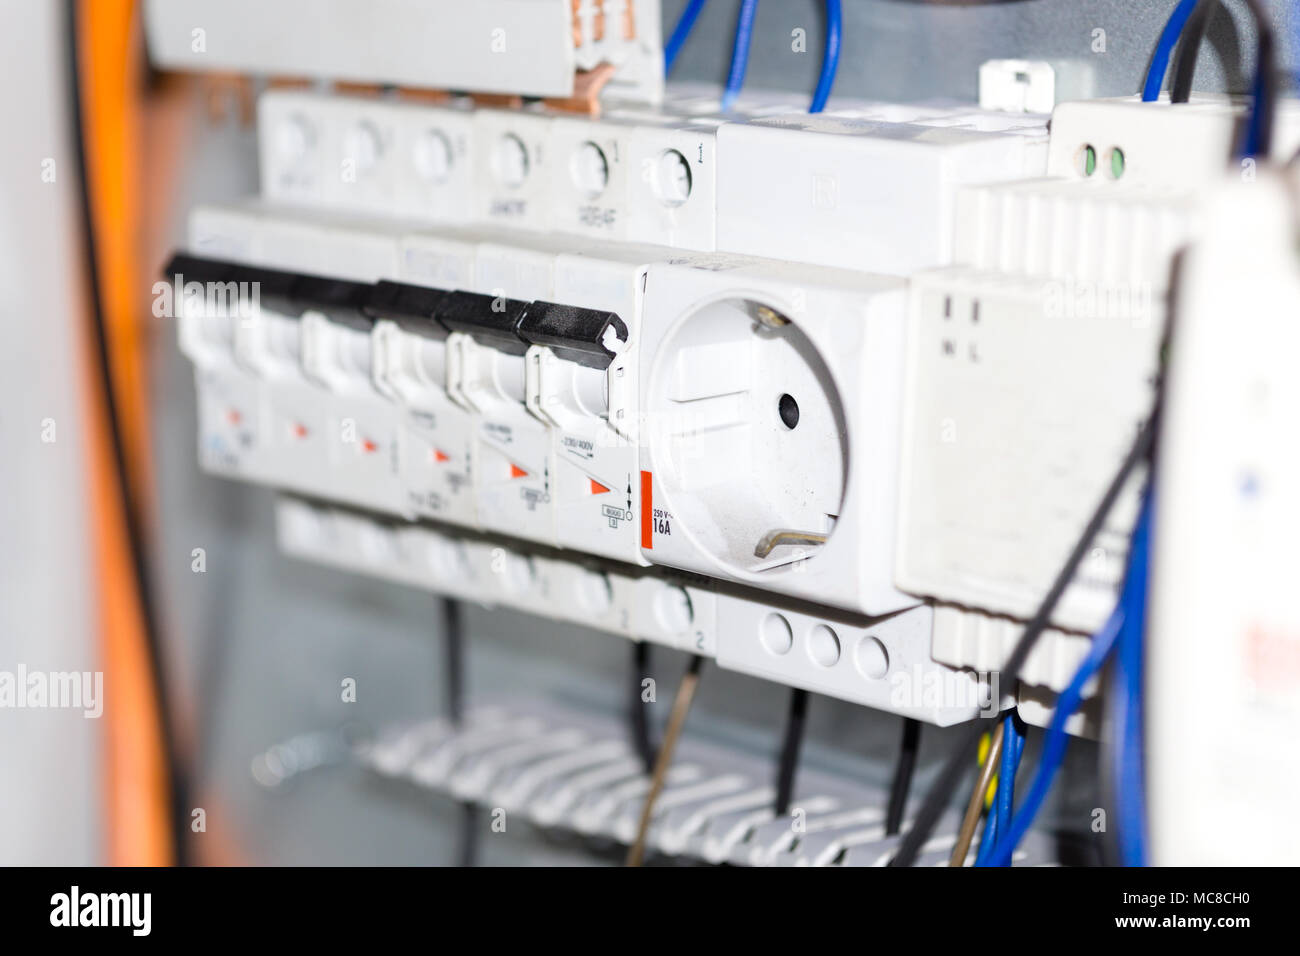 Electrical equipment components installation in fuse box. Wiring and ...